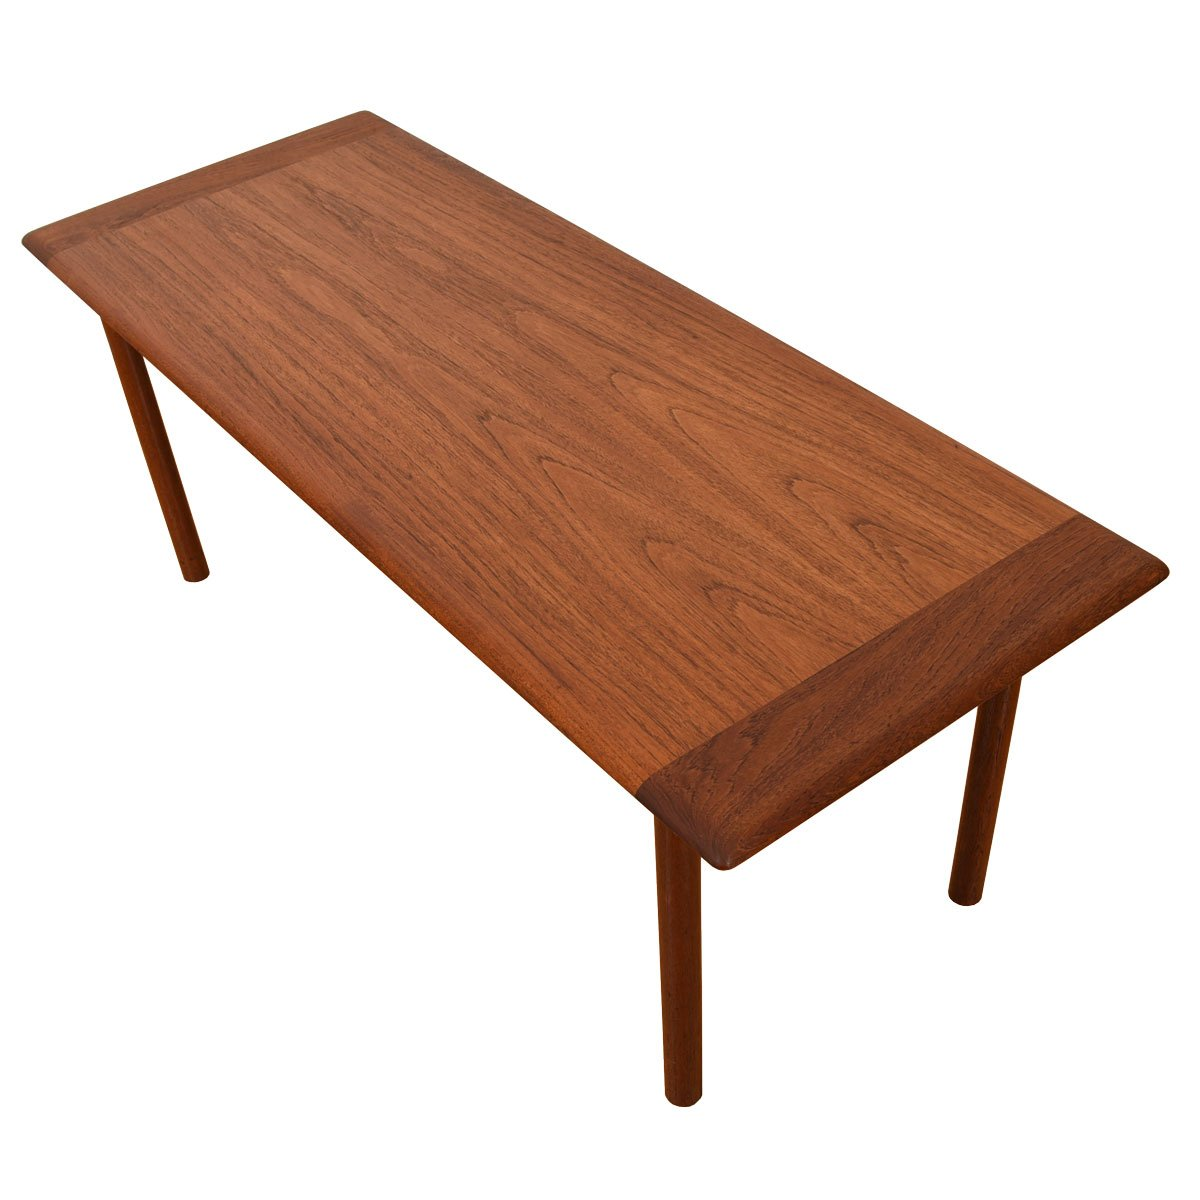 2-Tone Danish Teak Coffee Table w/ Edge Band Figuring